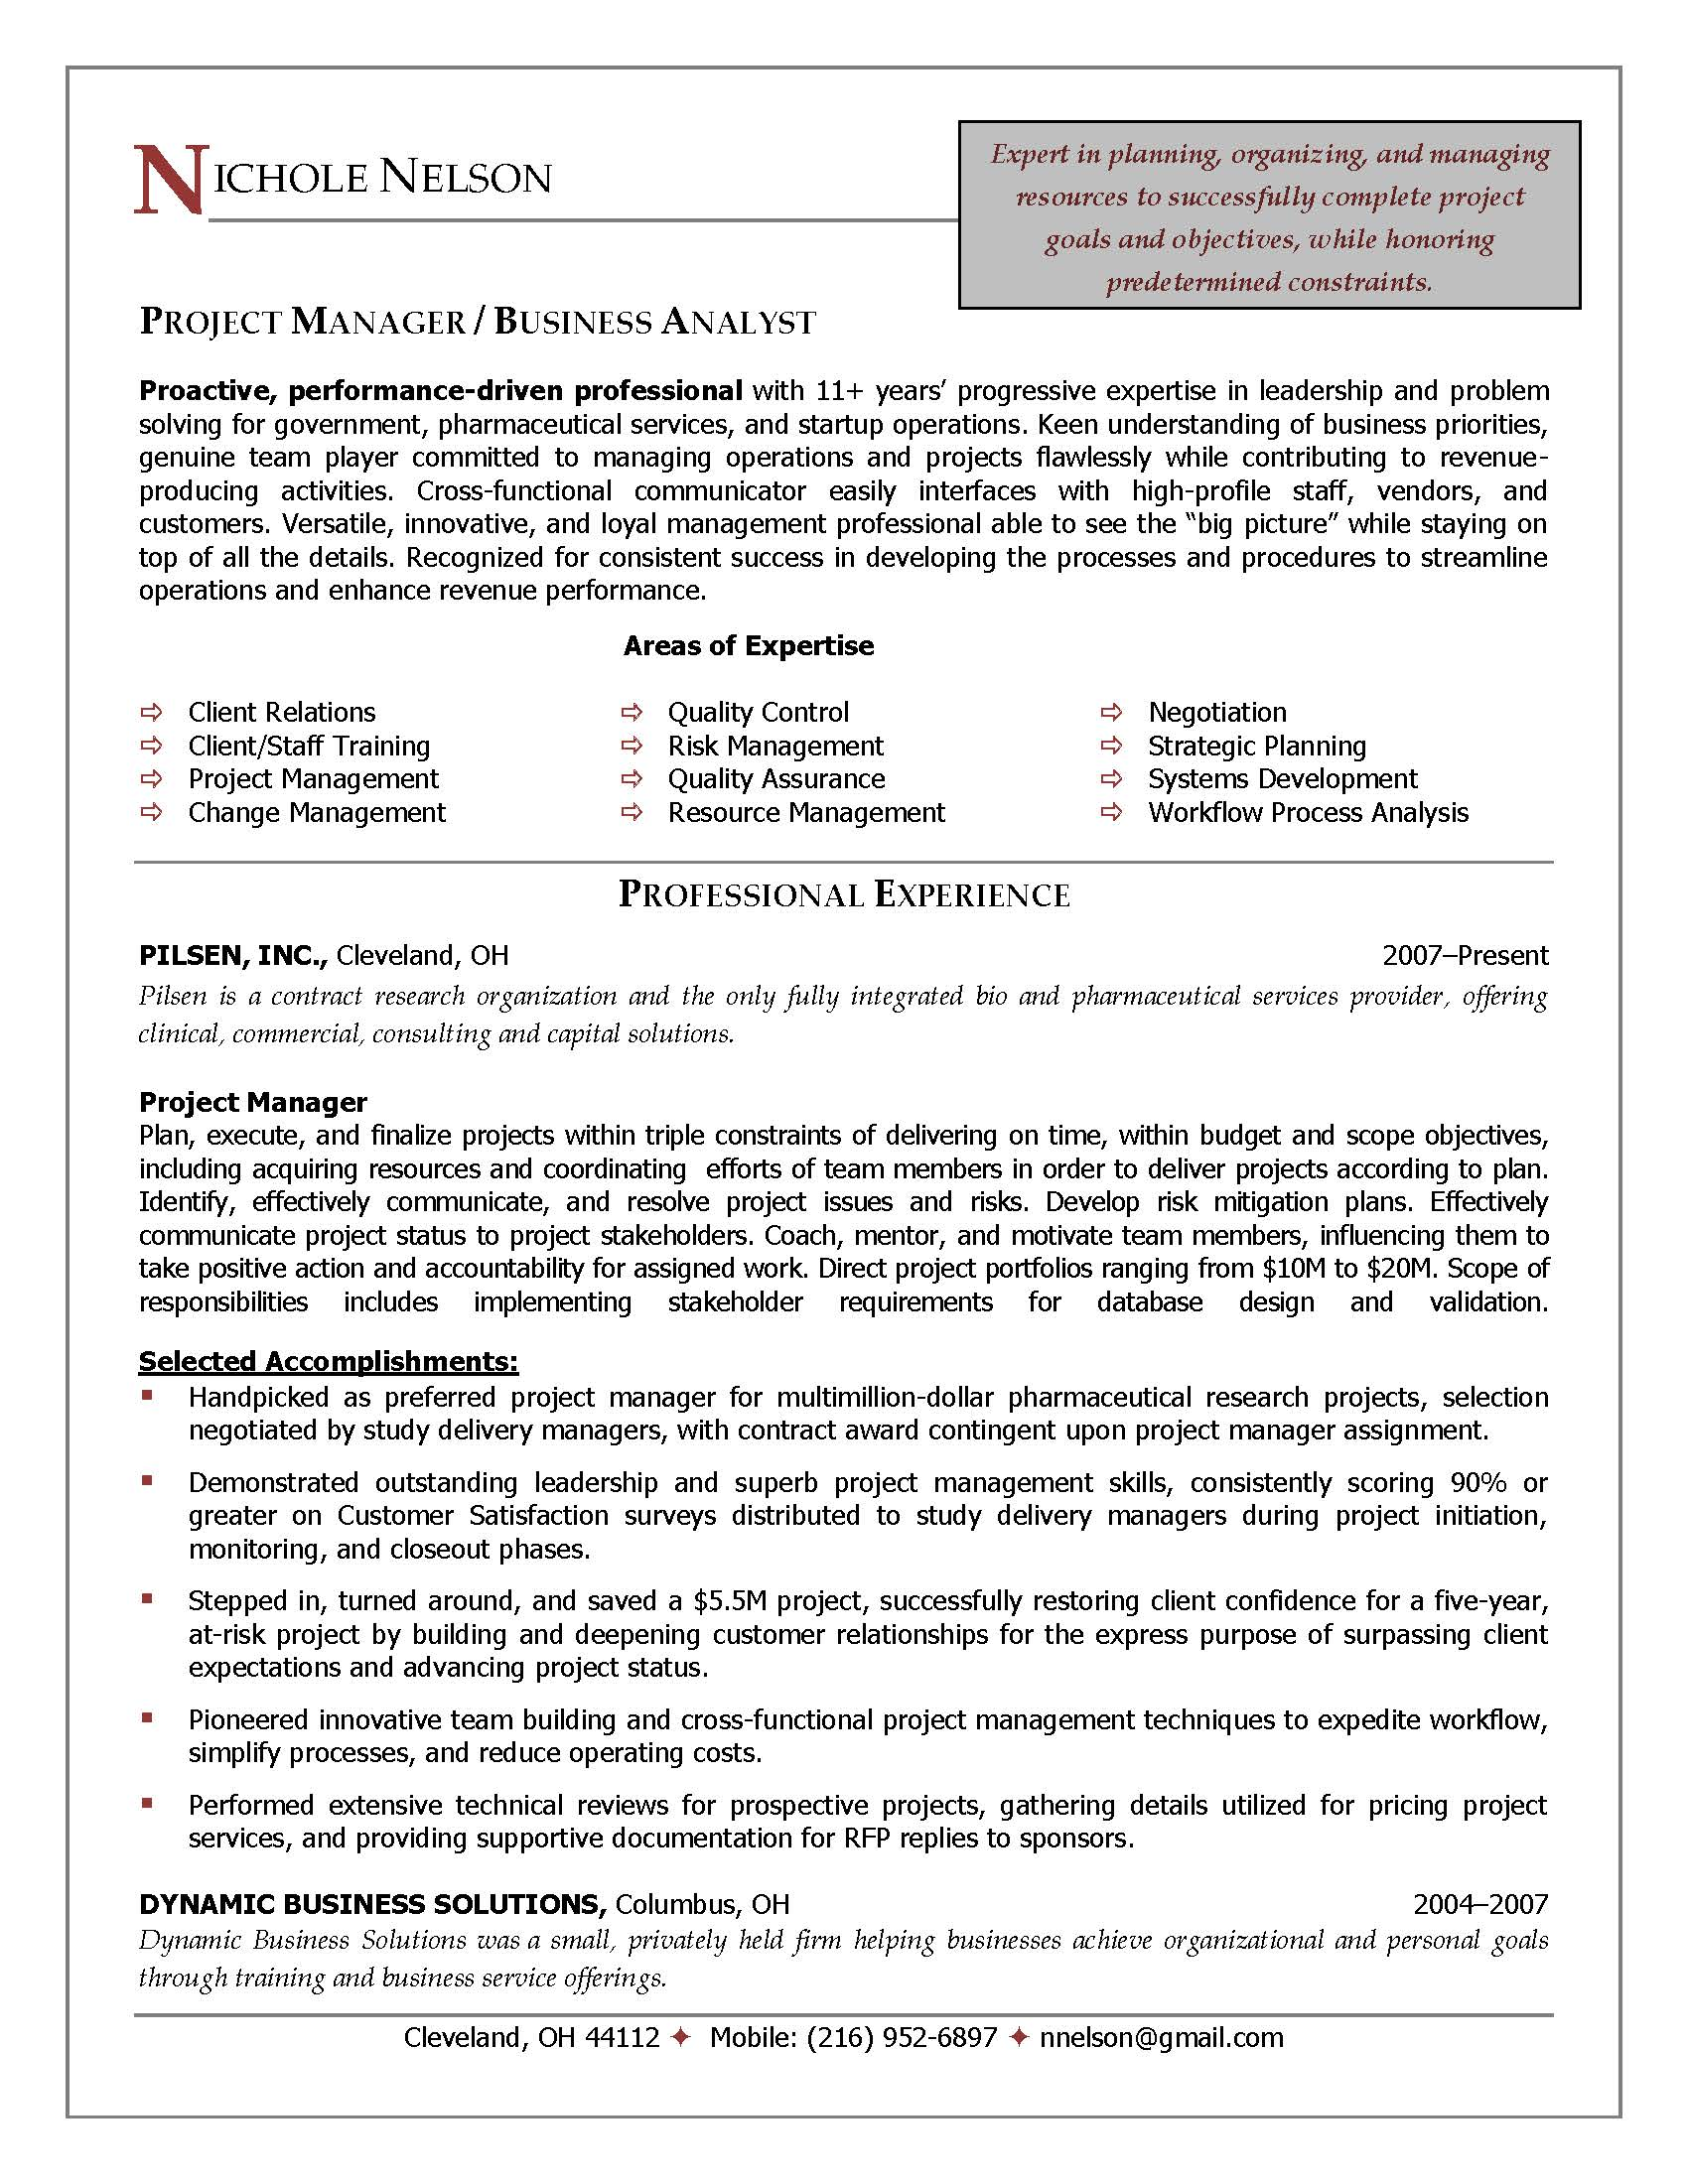 resume project manager example